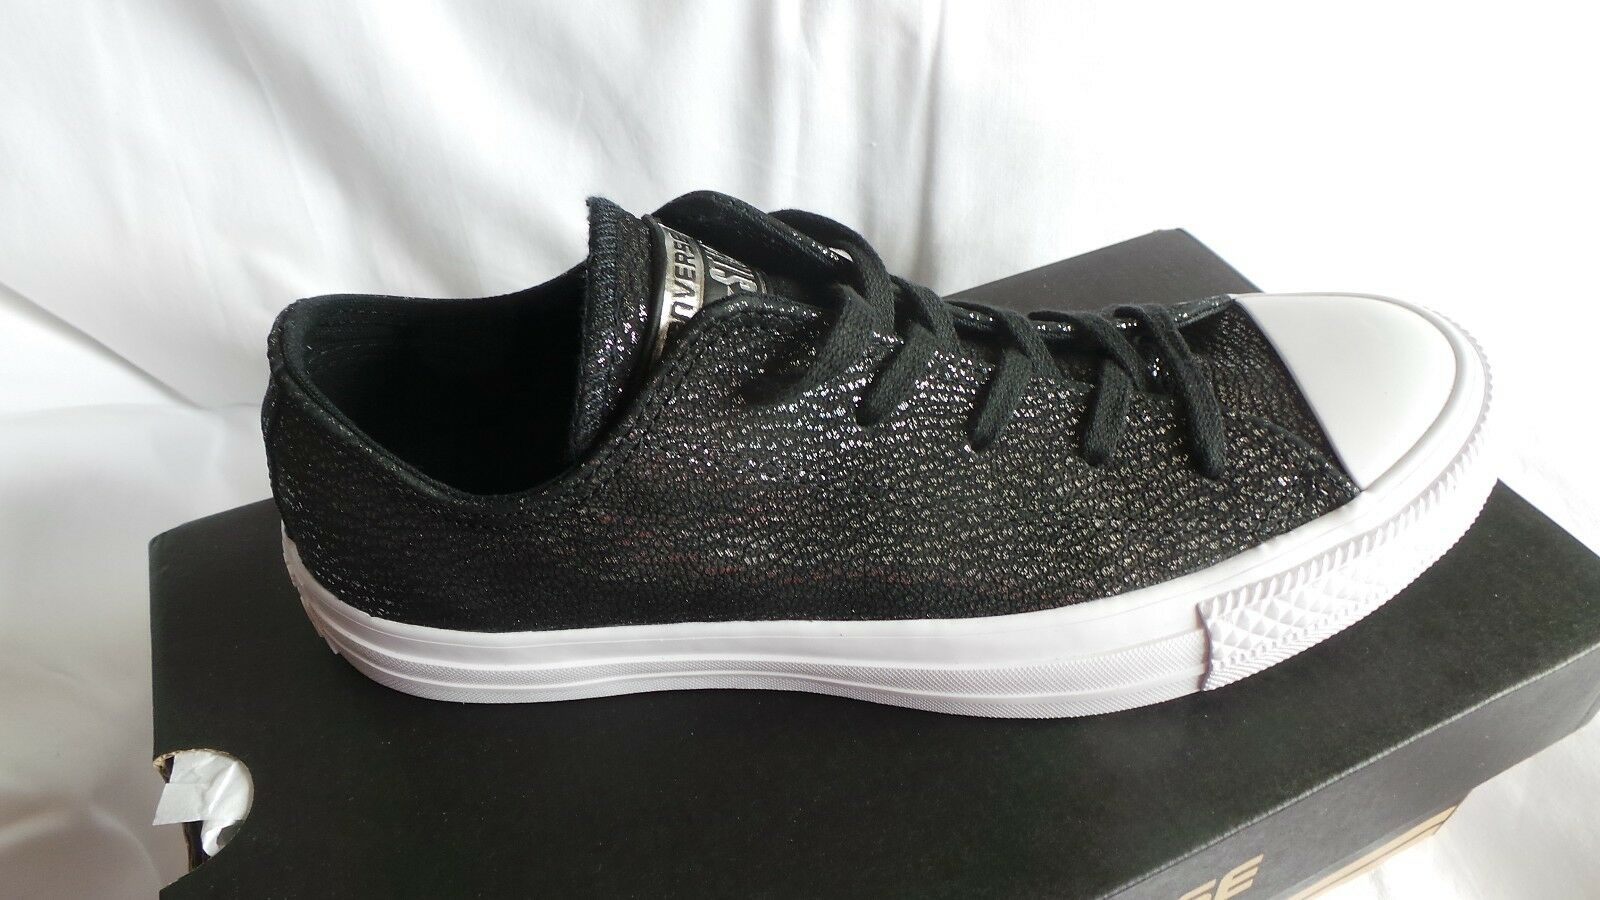 Brand New in box Converse Black Leather CTAS Ox trainers Size 4 EU 36.5 Silver